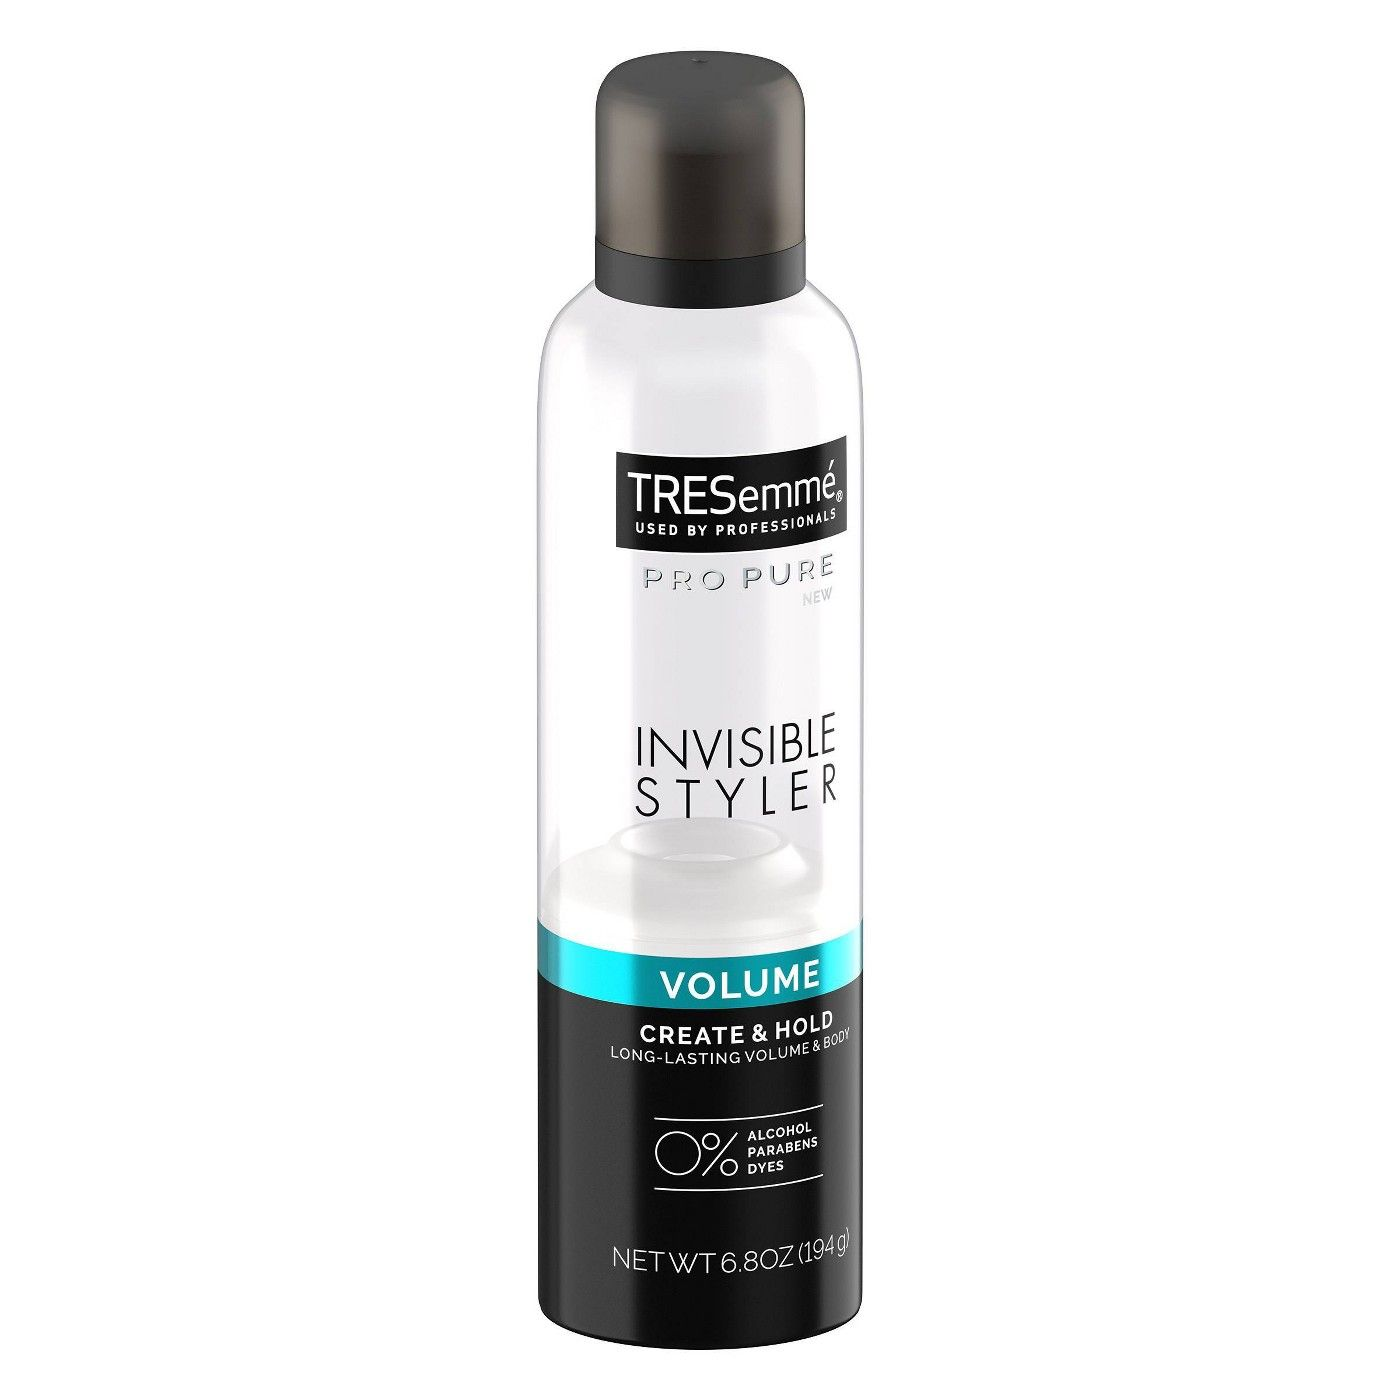 Tresemme Pro Pure Invisible Styler Volume Hair Styling Spray 6 8oz Affiliate Invisible Ad Styler Pure Pure Products Tresemme Styling Sprays